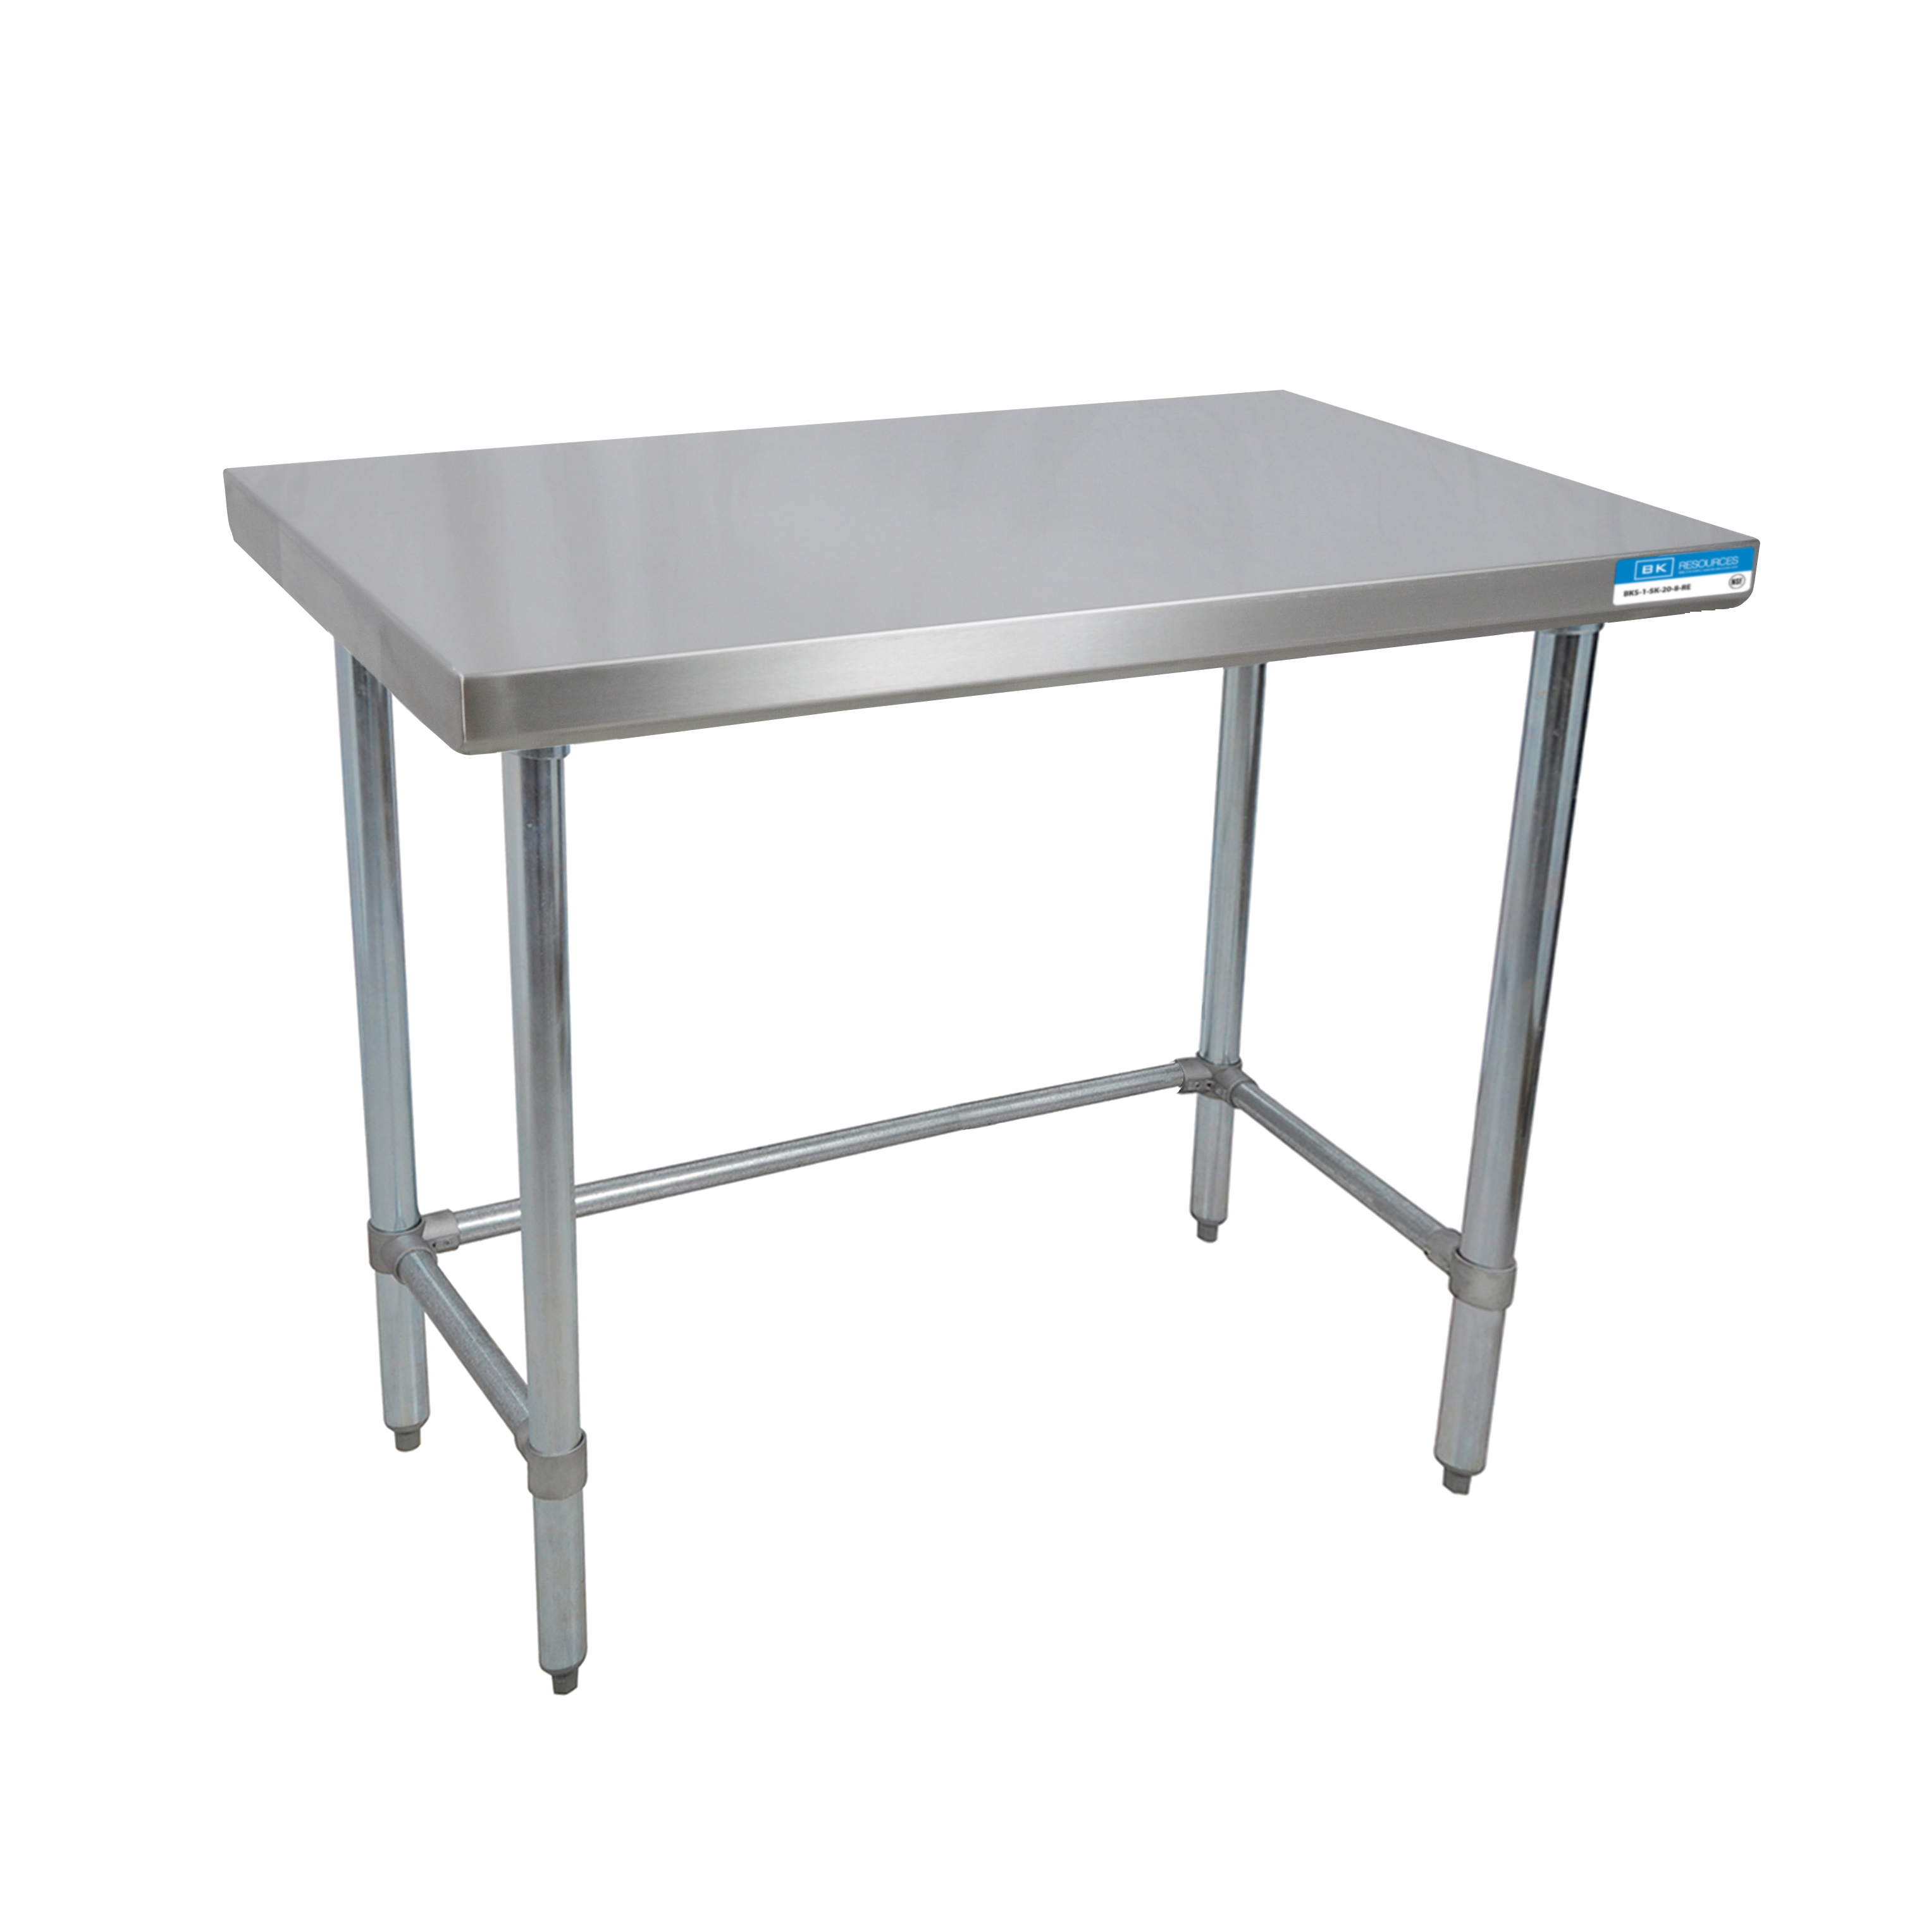 BK Resources CTTOB-4830 work table,  40